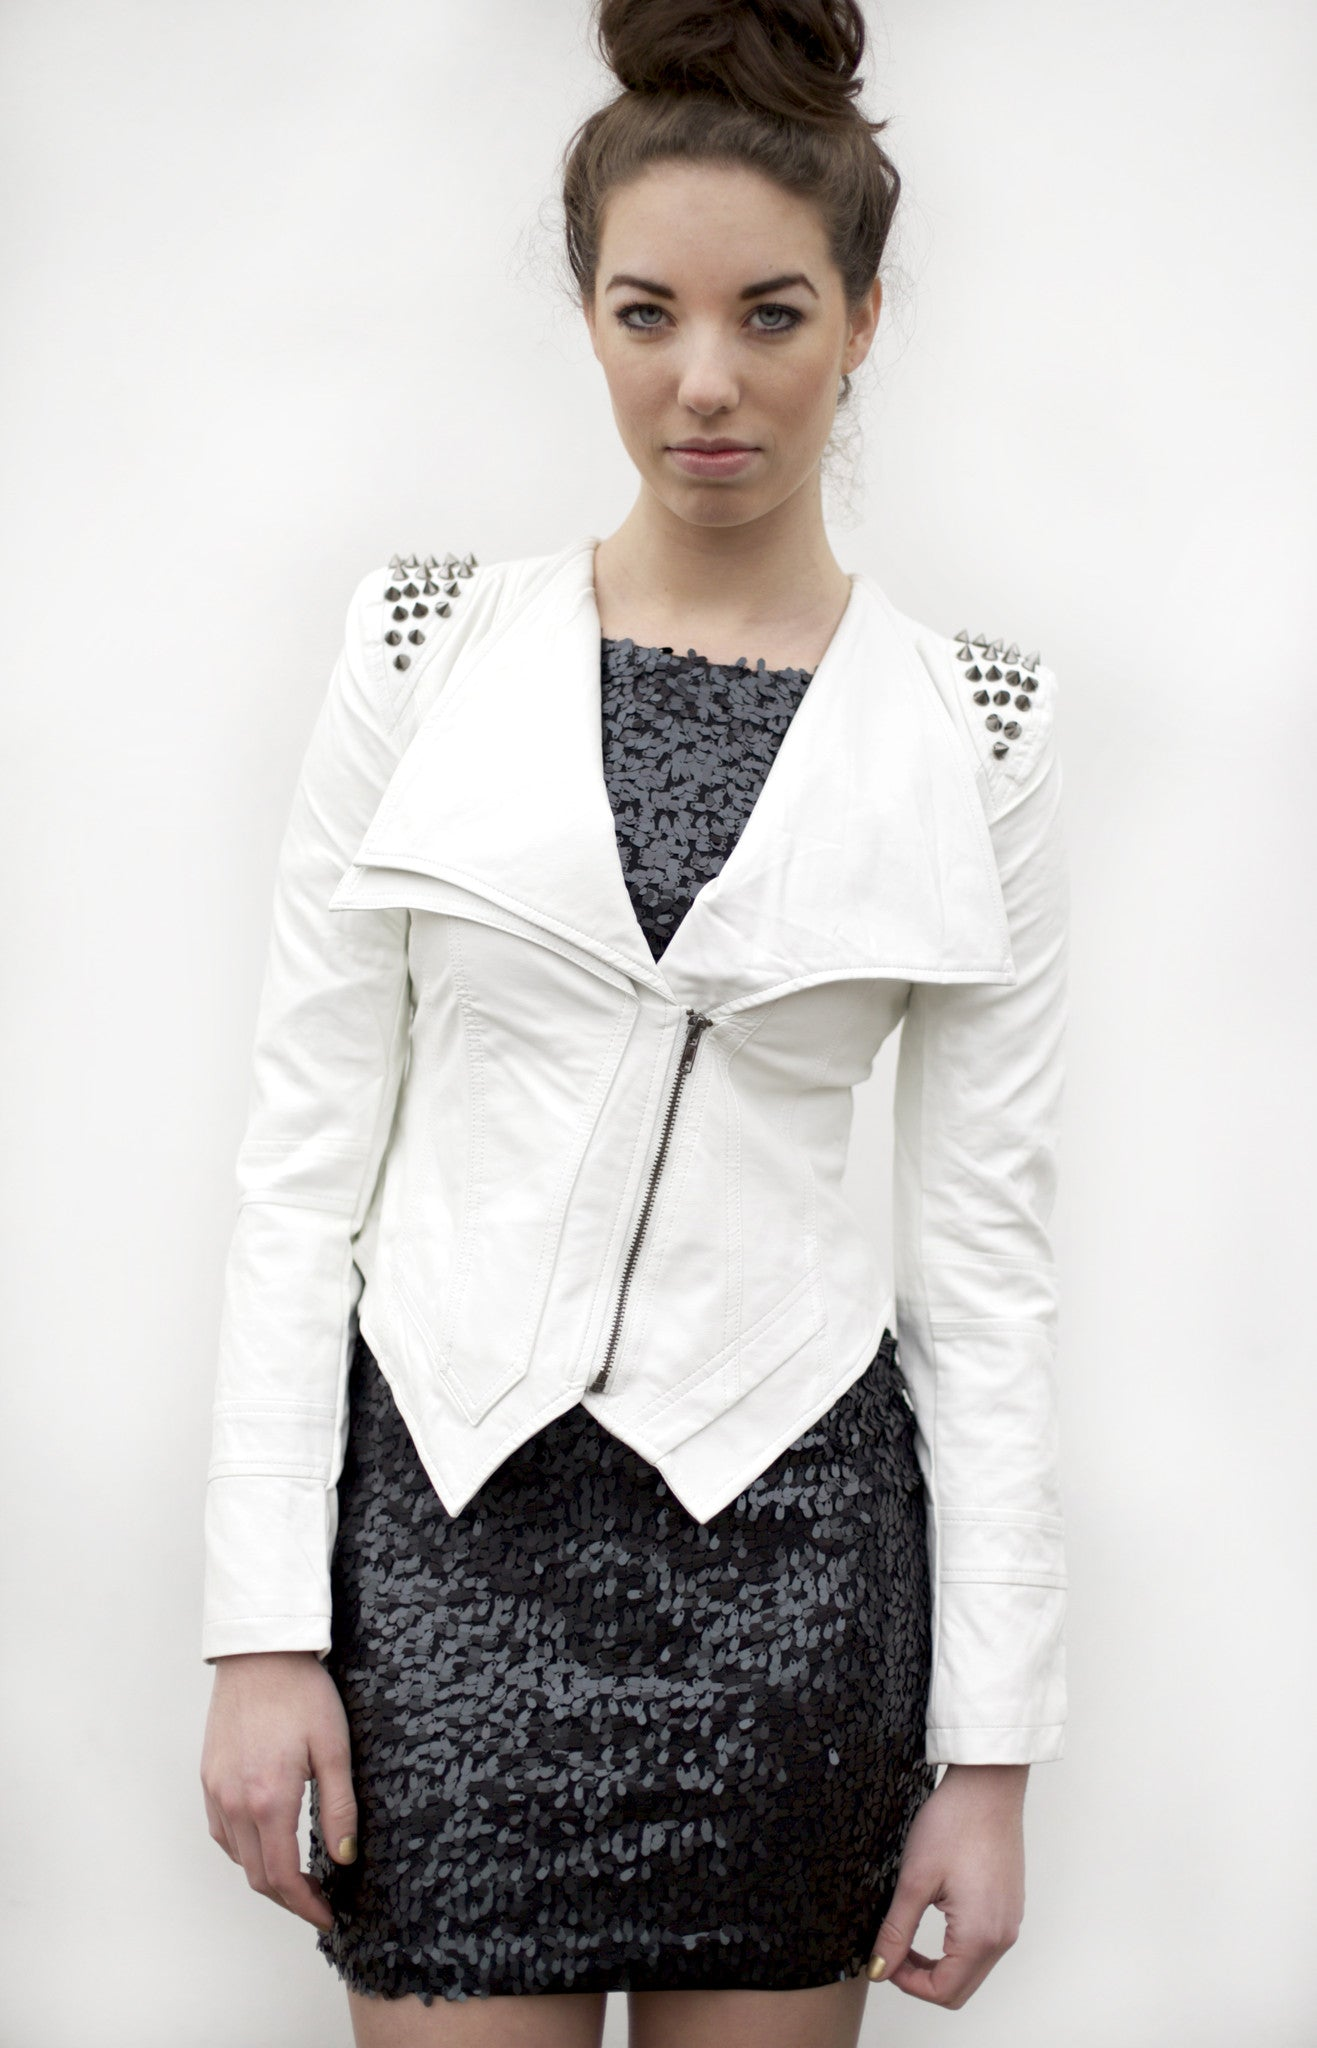 Moondust Studded Jacket